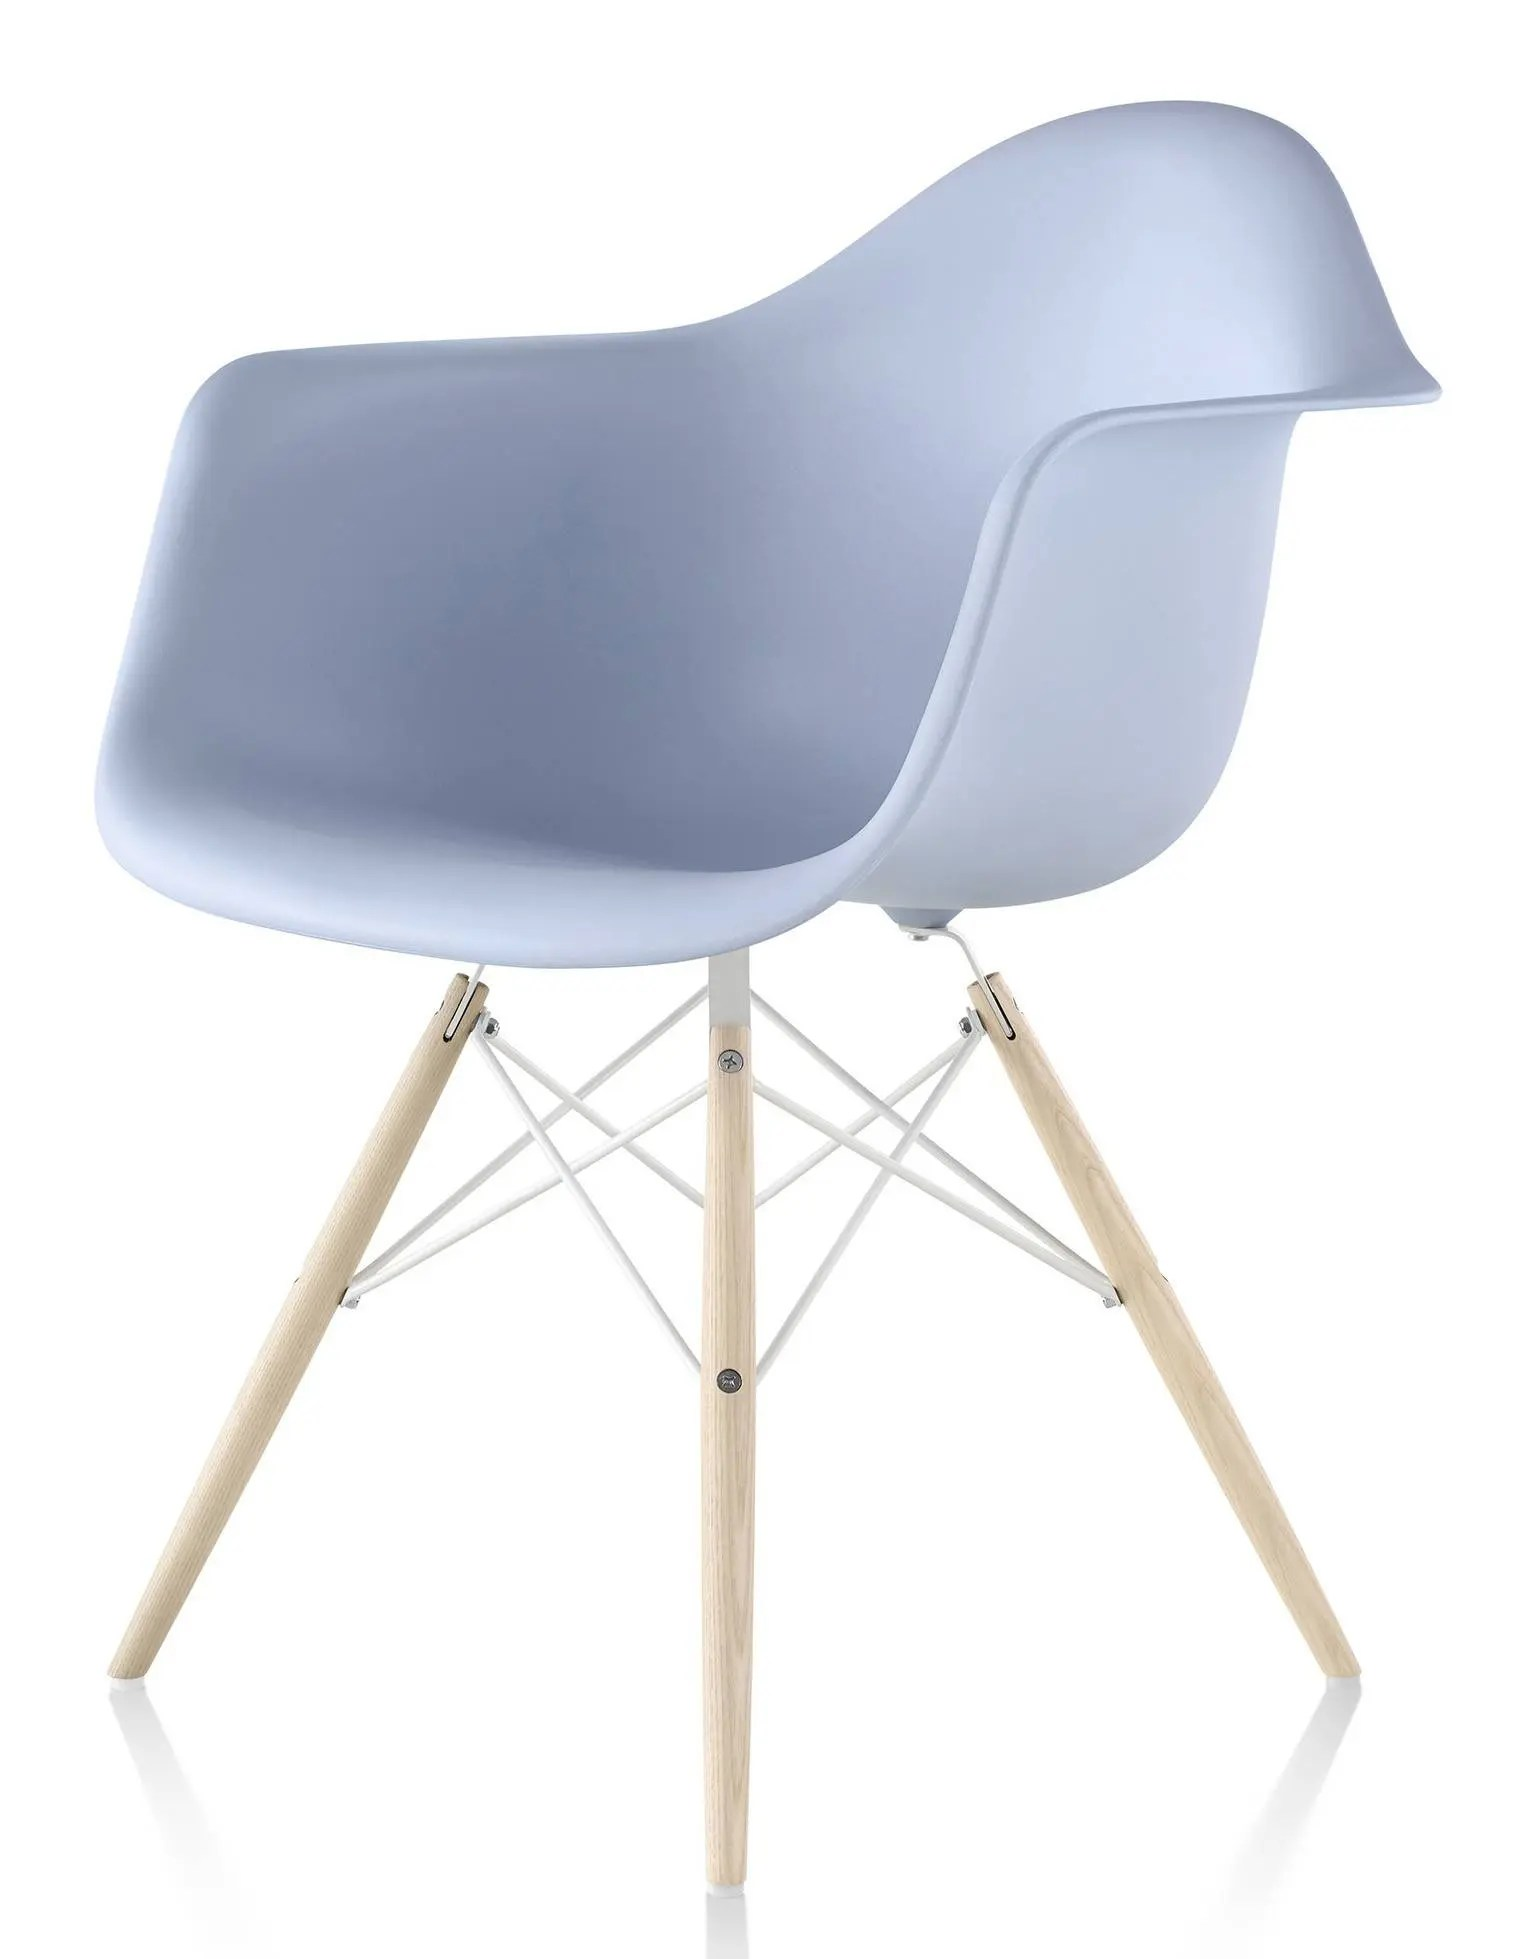 Eames Molded Plastic Chair Knockoff Herman Miller Eames Molded Plastic Armchair Gr Shop Canada